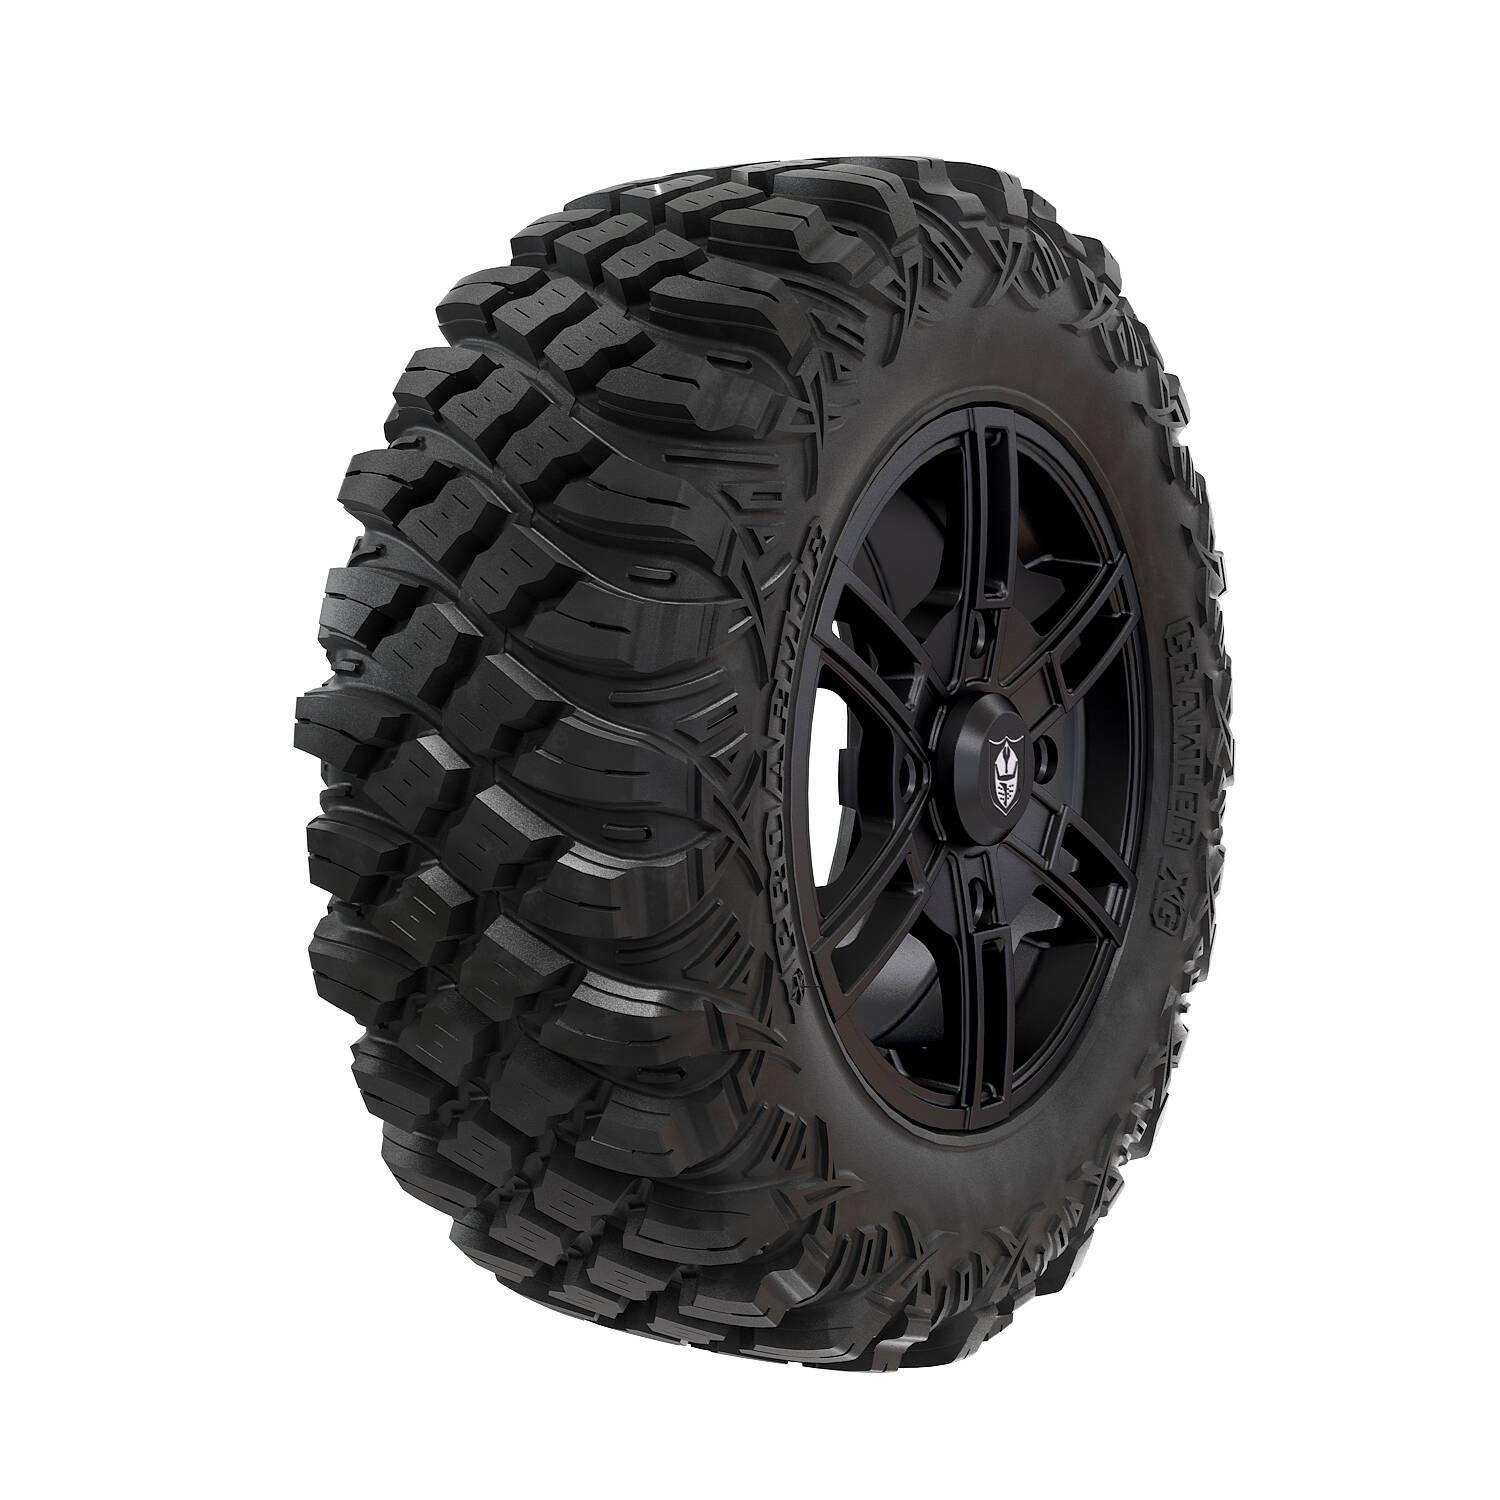 Pro Armor® Wheel & Tire Set: Wyde - Matte Black & Crawler XG - 28""